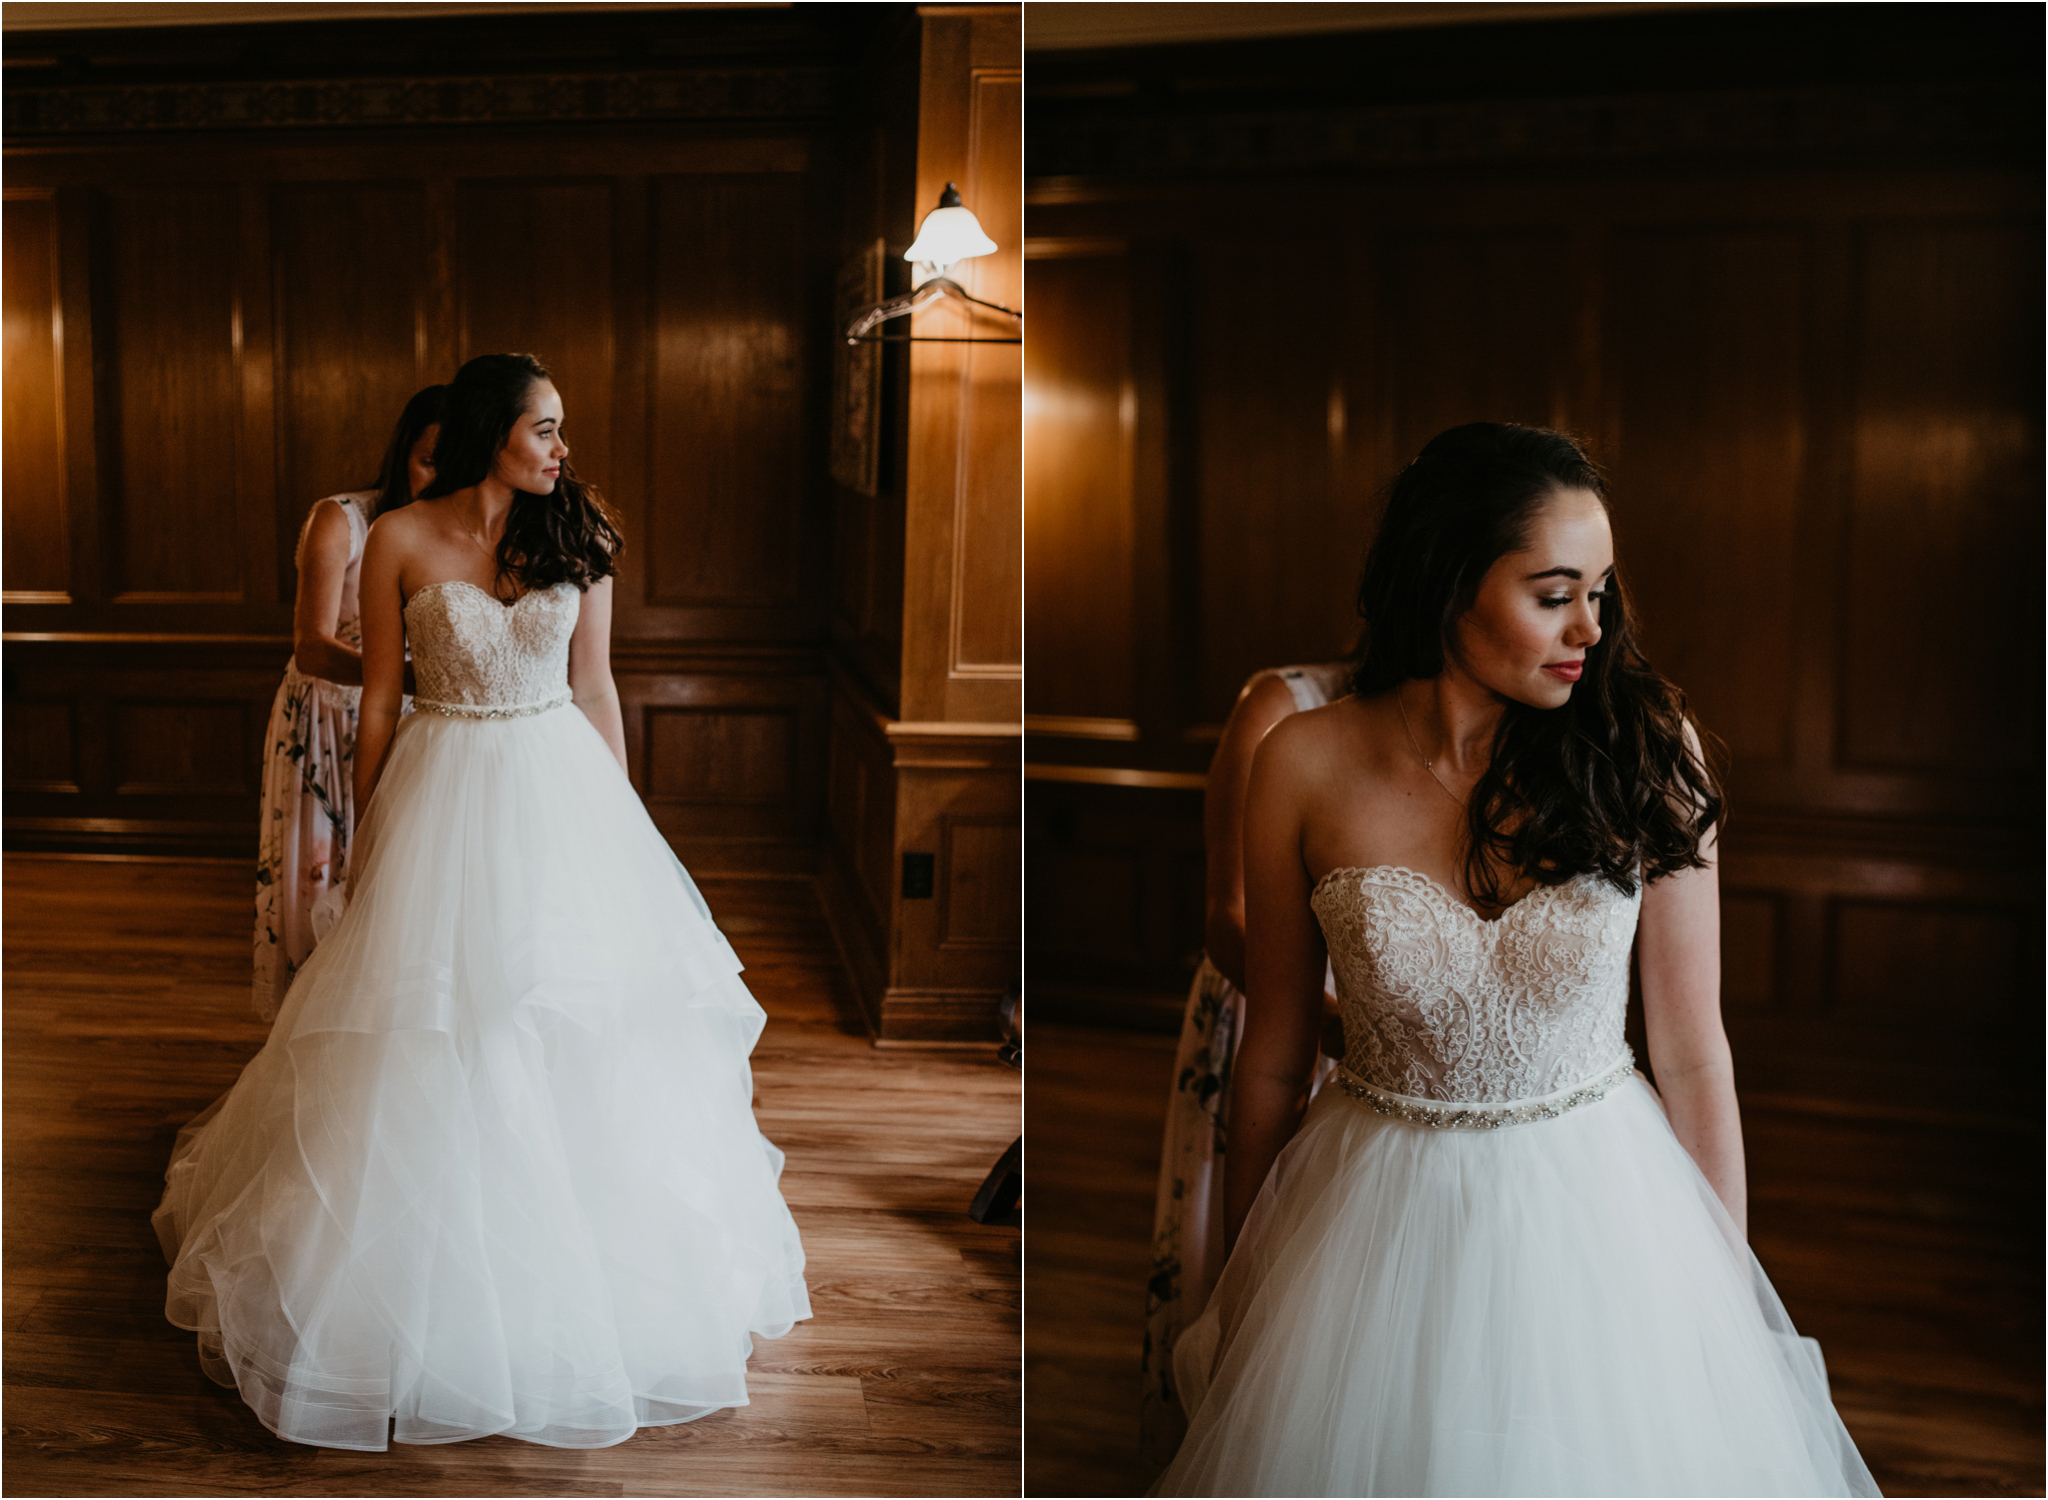 chance-and-ondrea-lairmont-manor-wedding-seattle-photographer-012.jpg